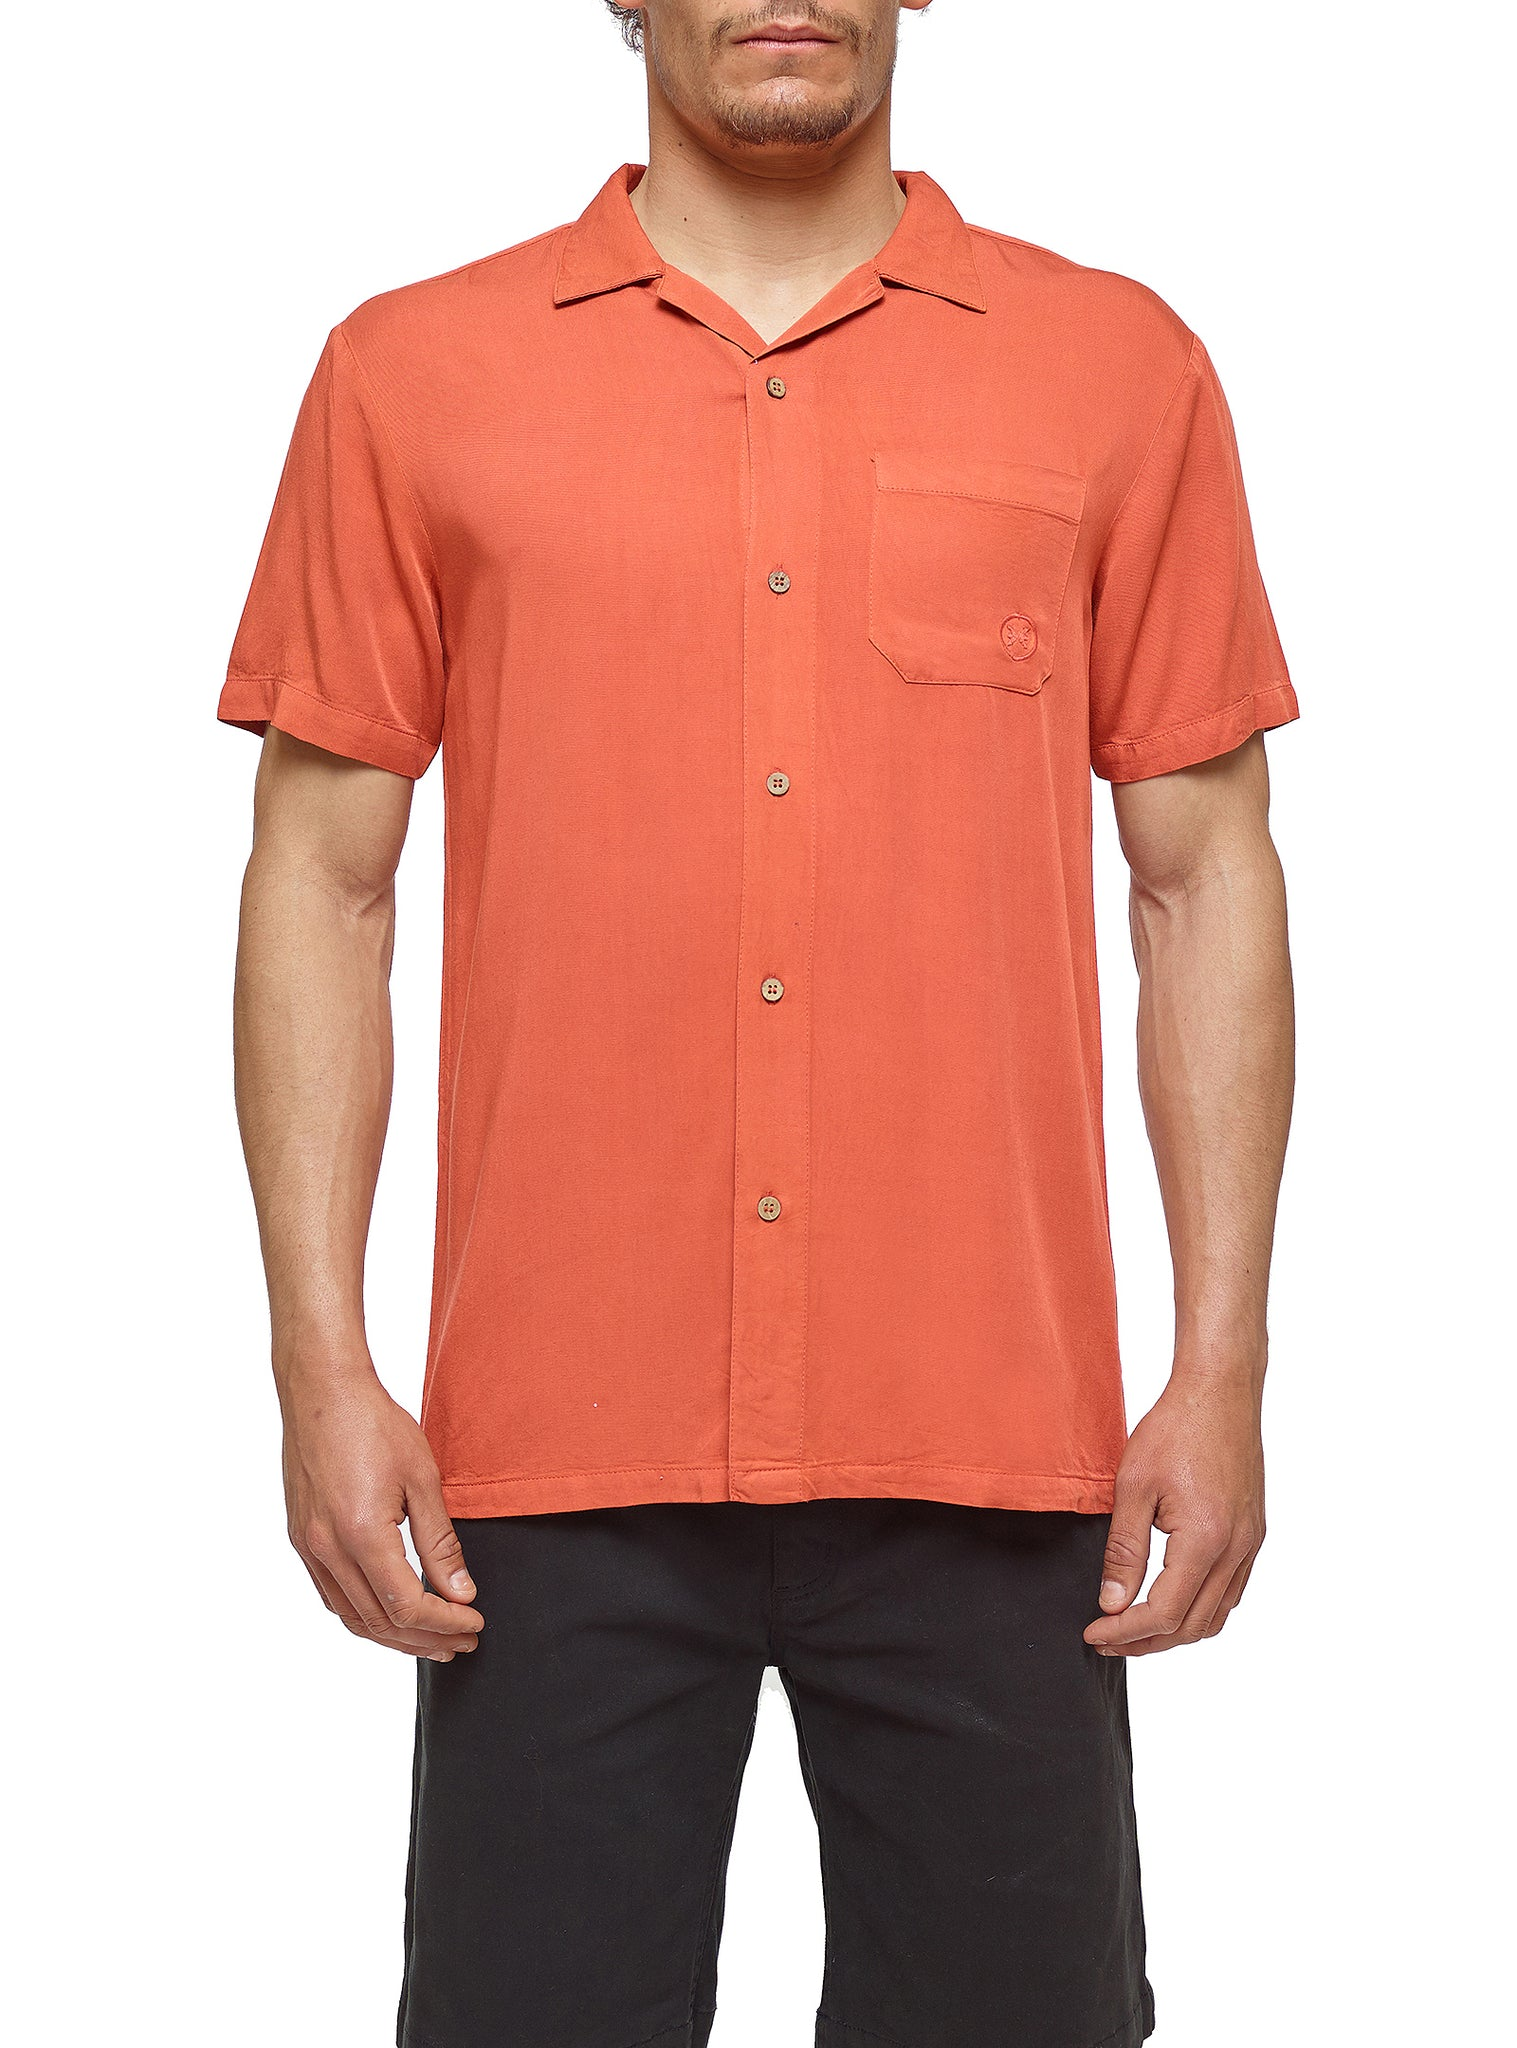 Camp Shirt Shortsleeve Orange